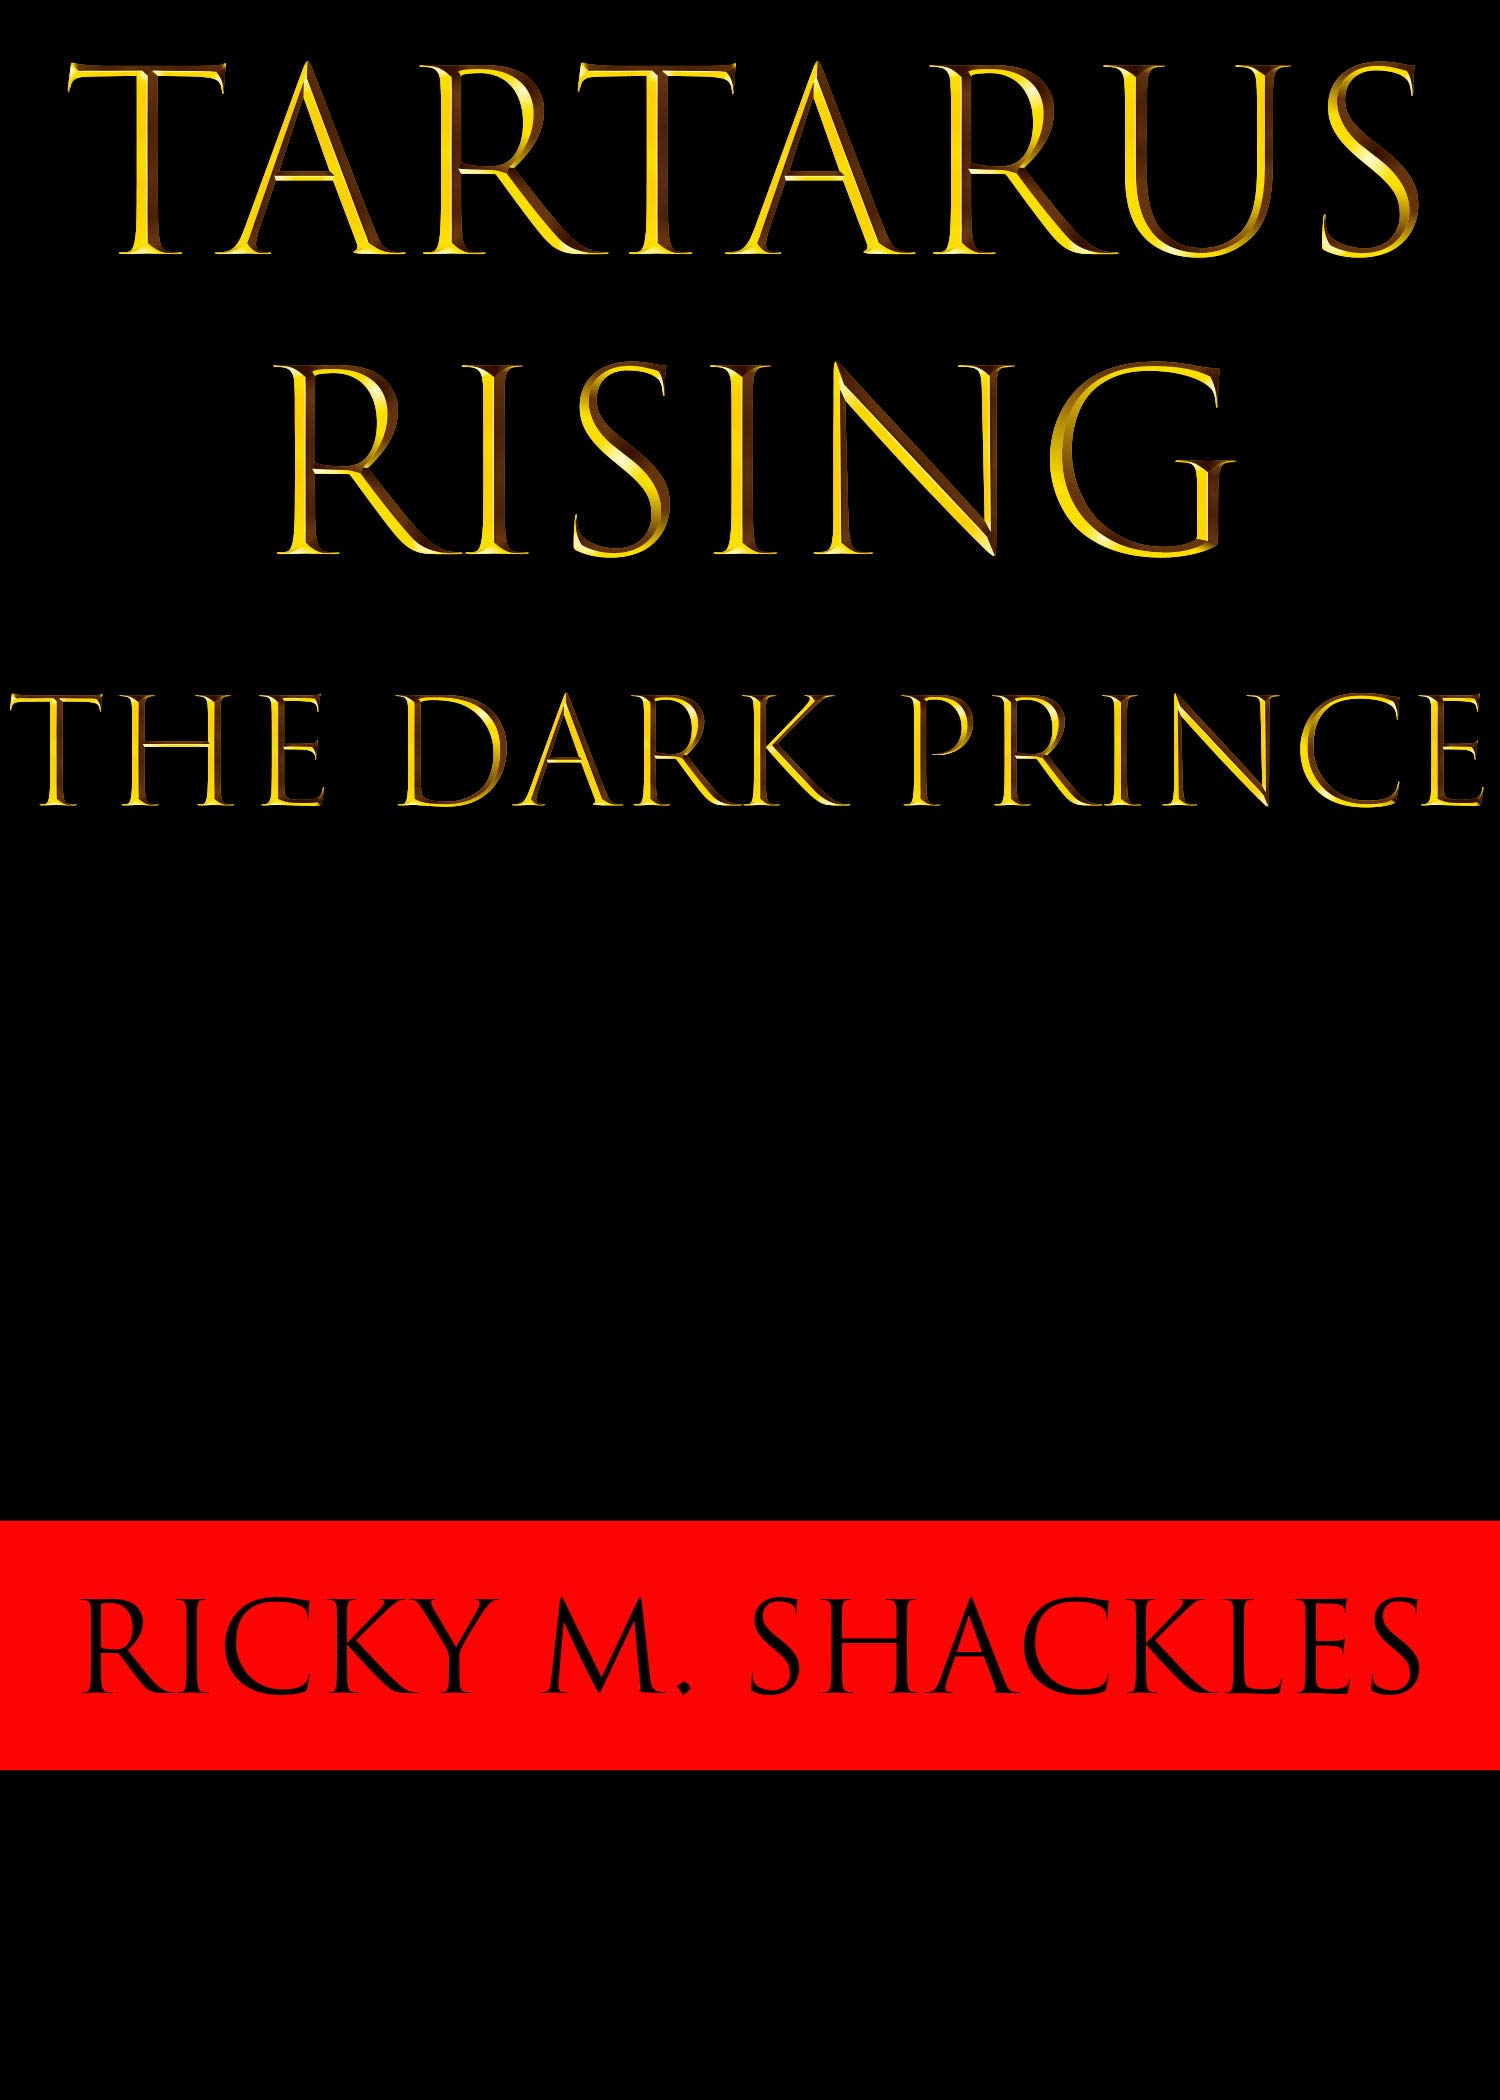 Tartarus Rising: The Dark Prince